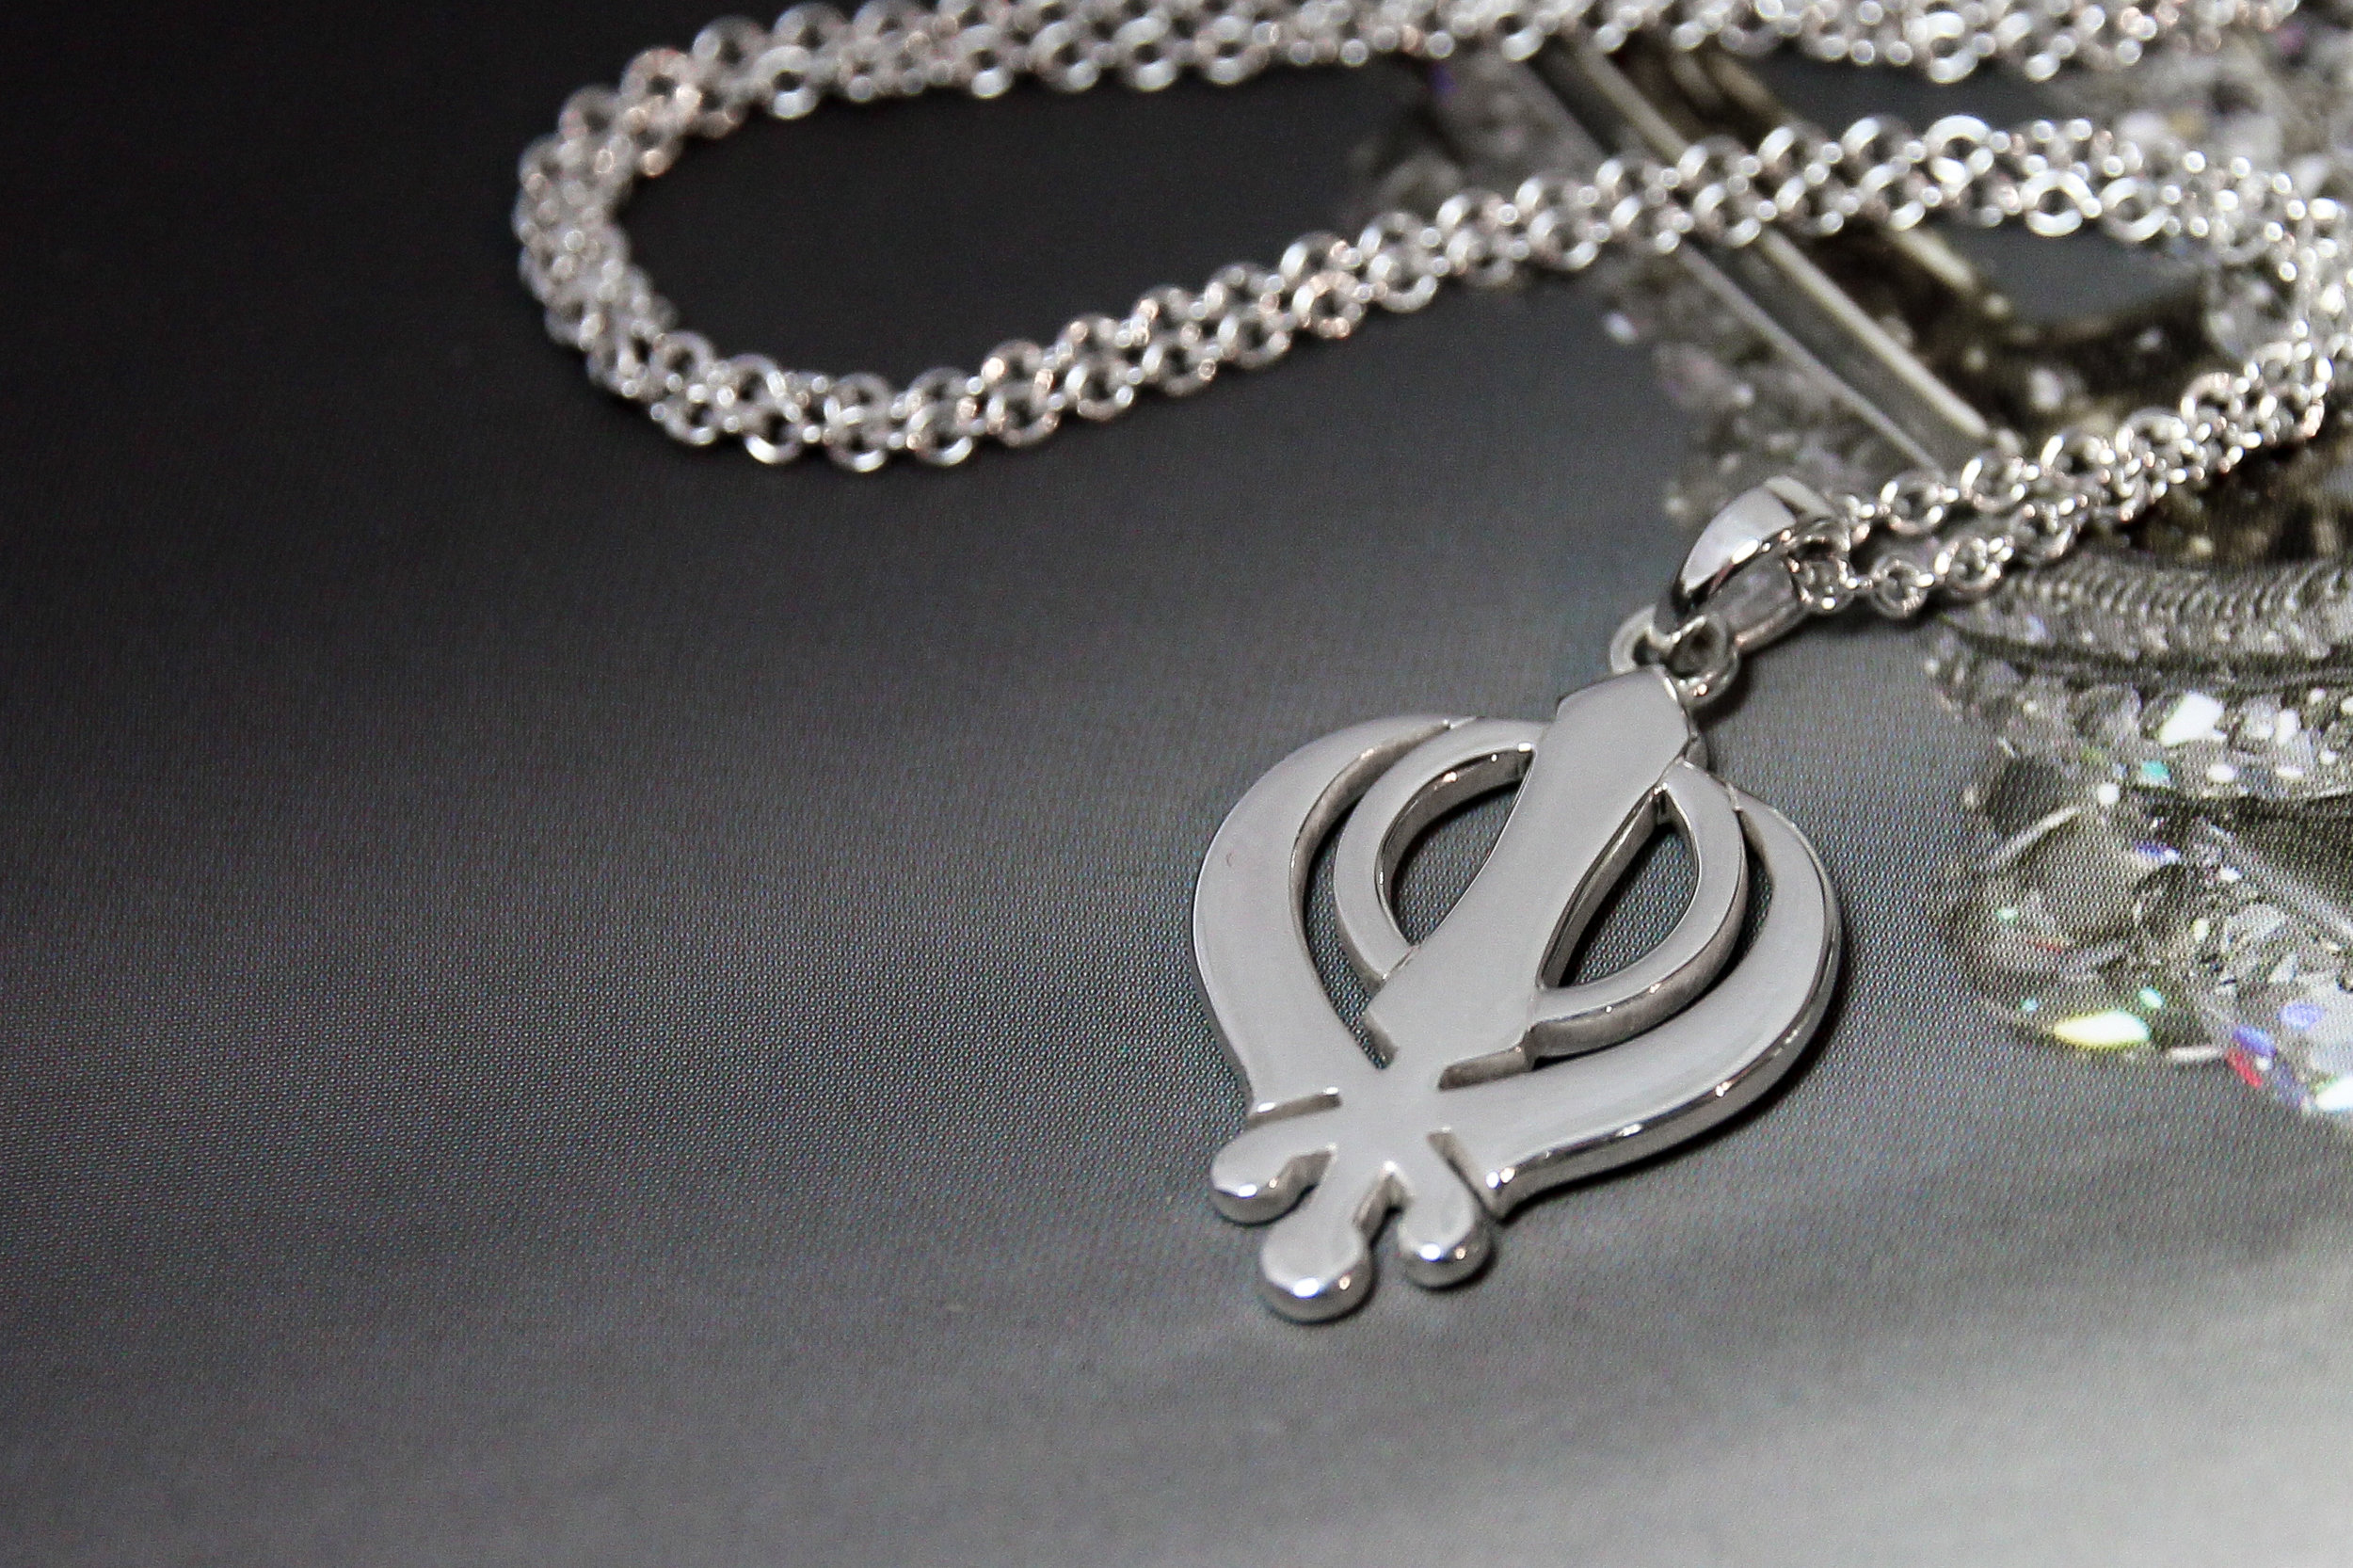 Small sterling silver khanda pendant necklace